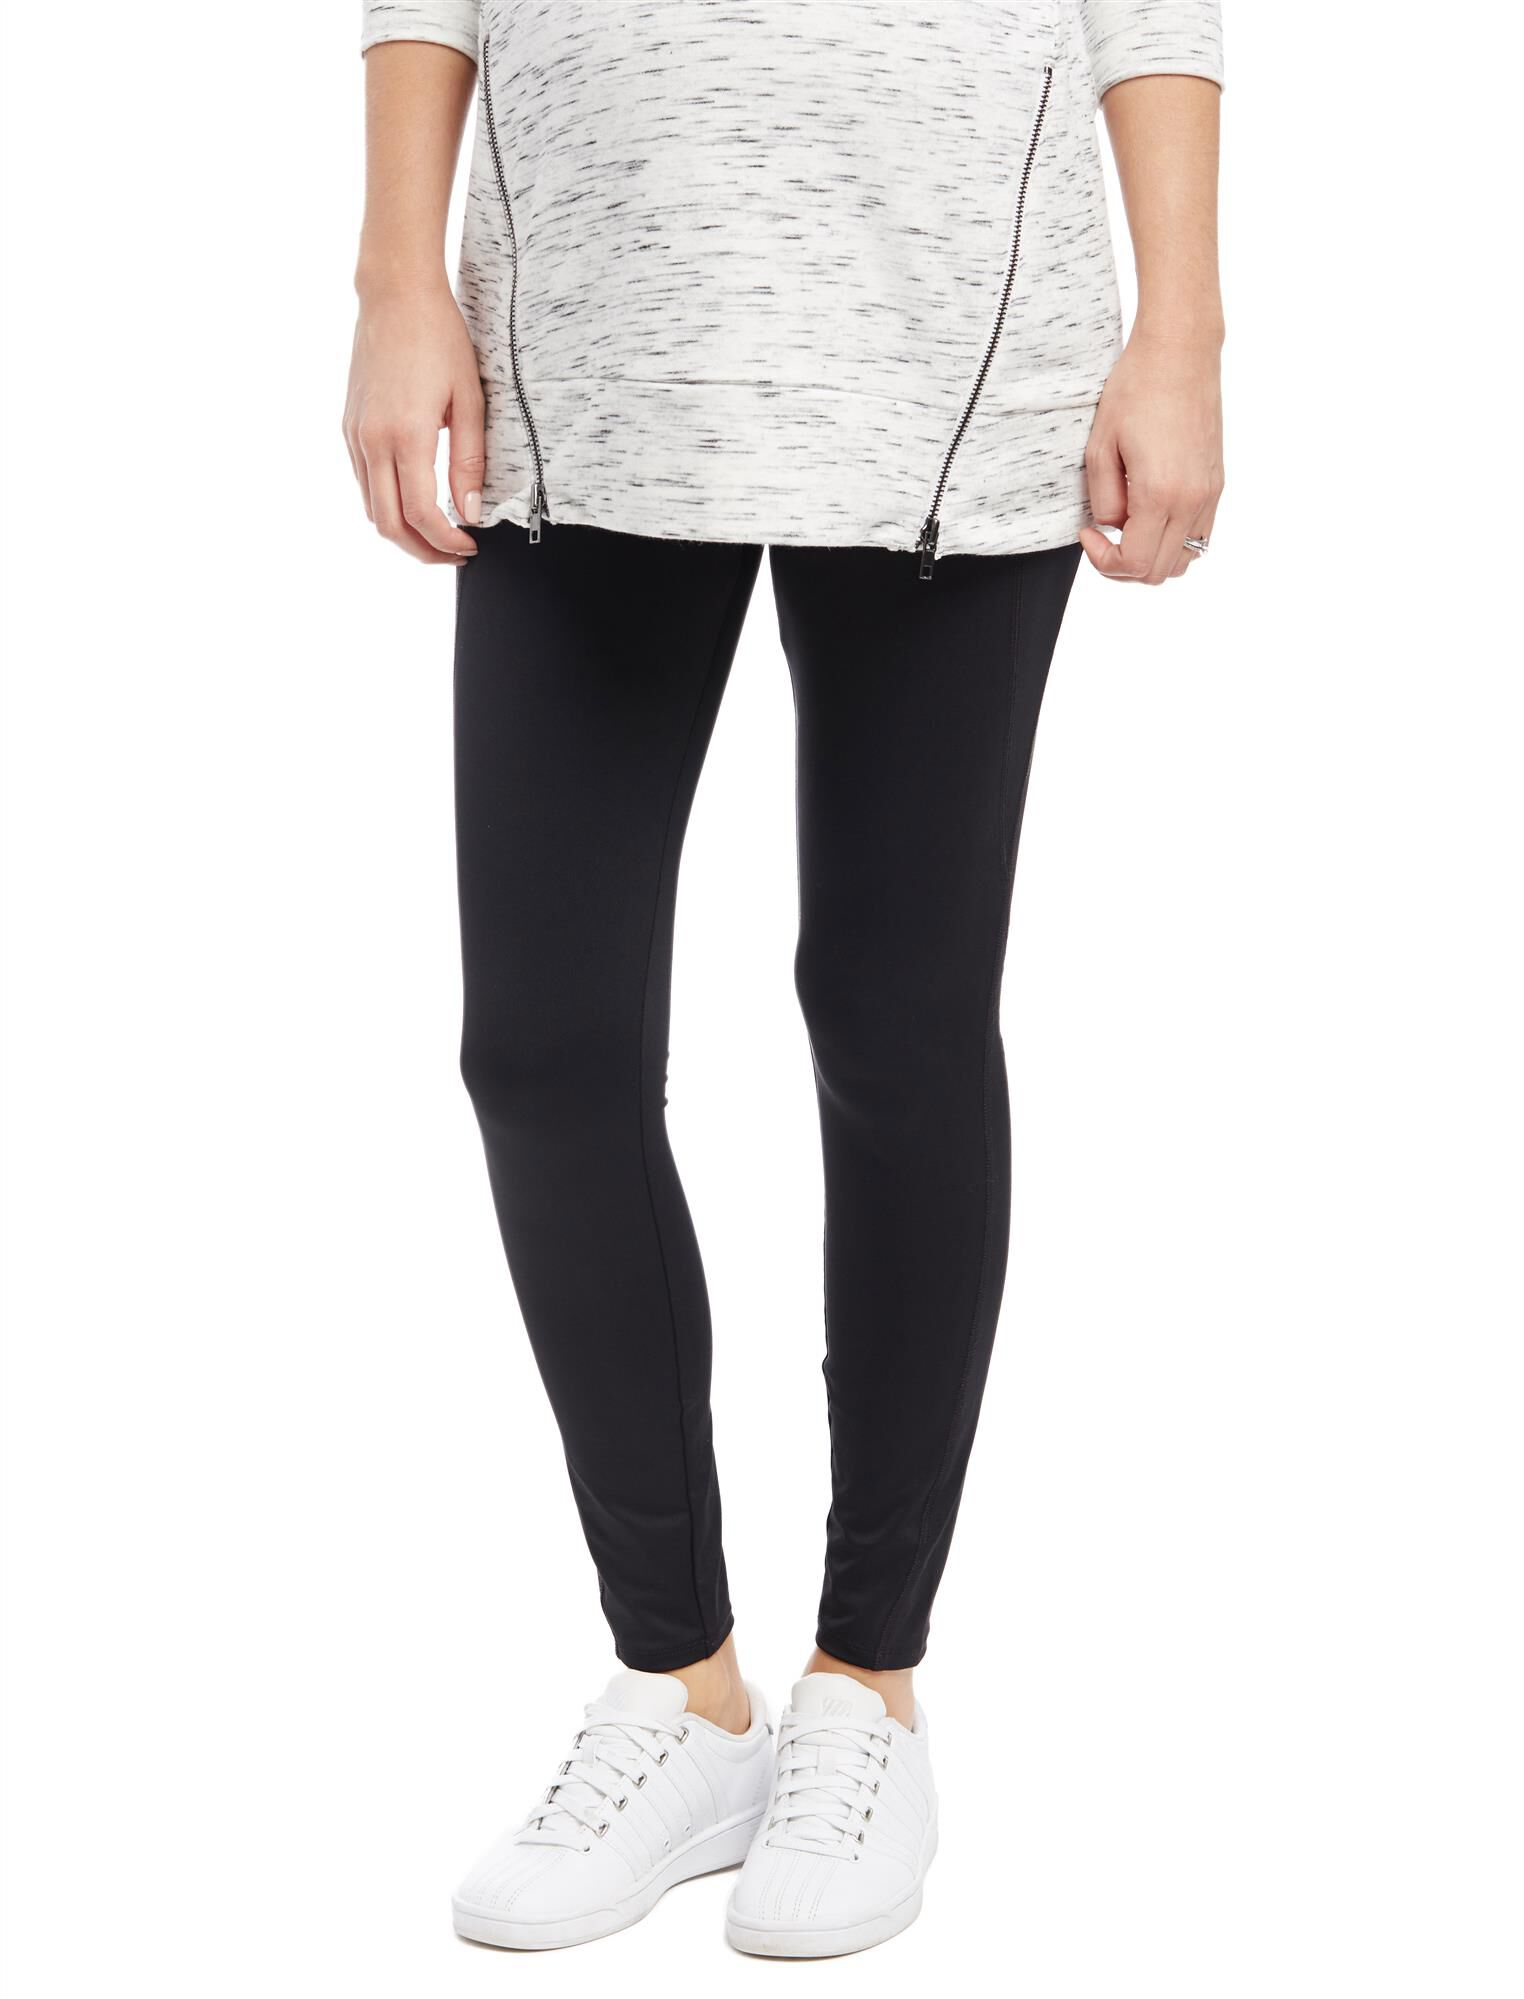 Secret Fit Belly Maternity Performance Legging